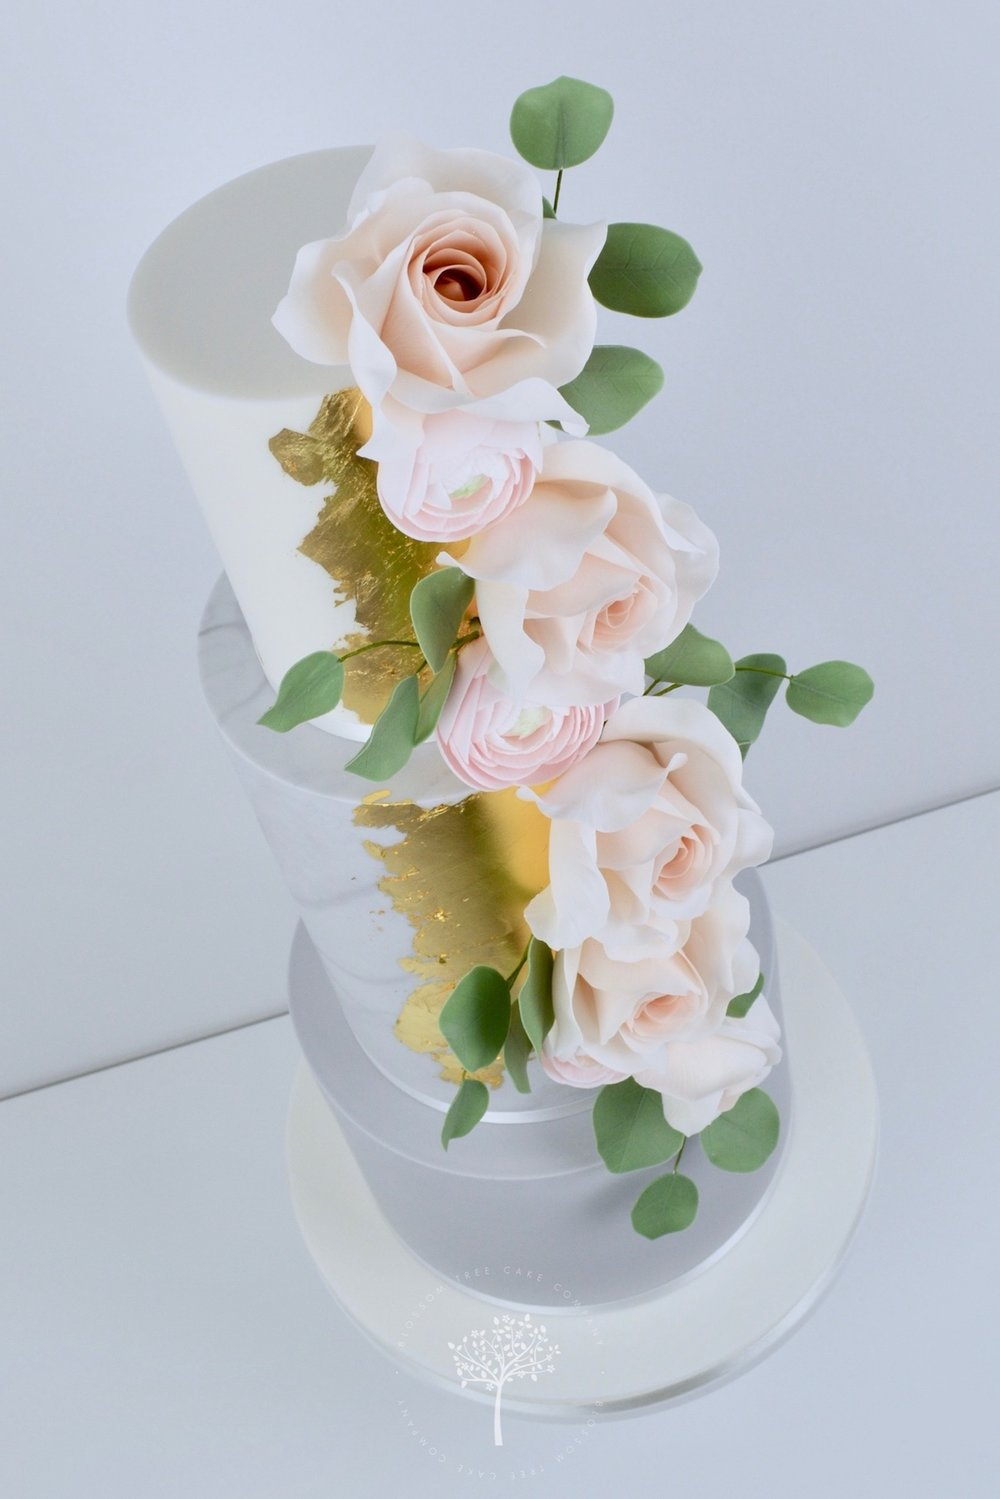 Rose Gold and Ranunculus wedding cake by Blossom Tree Cake Company Harrogate North Yorkshire - angle.jpg